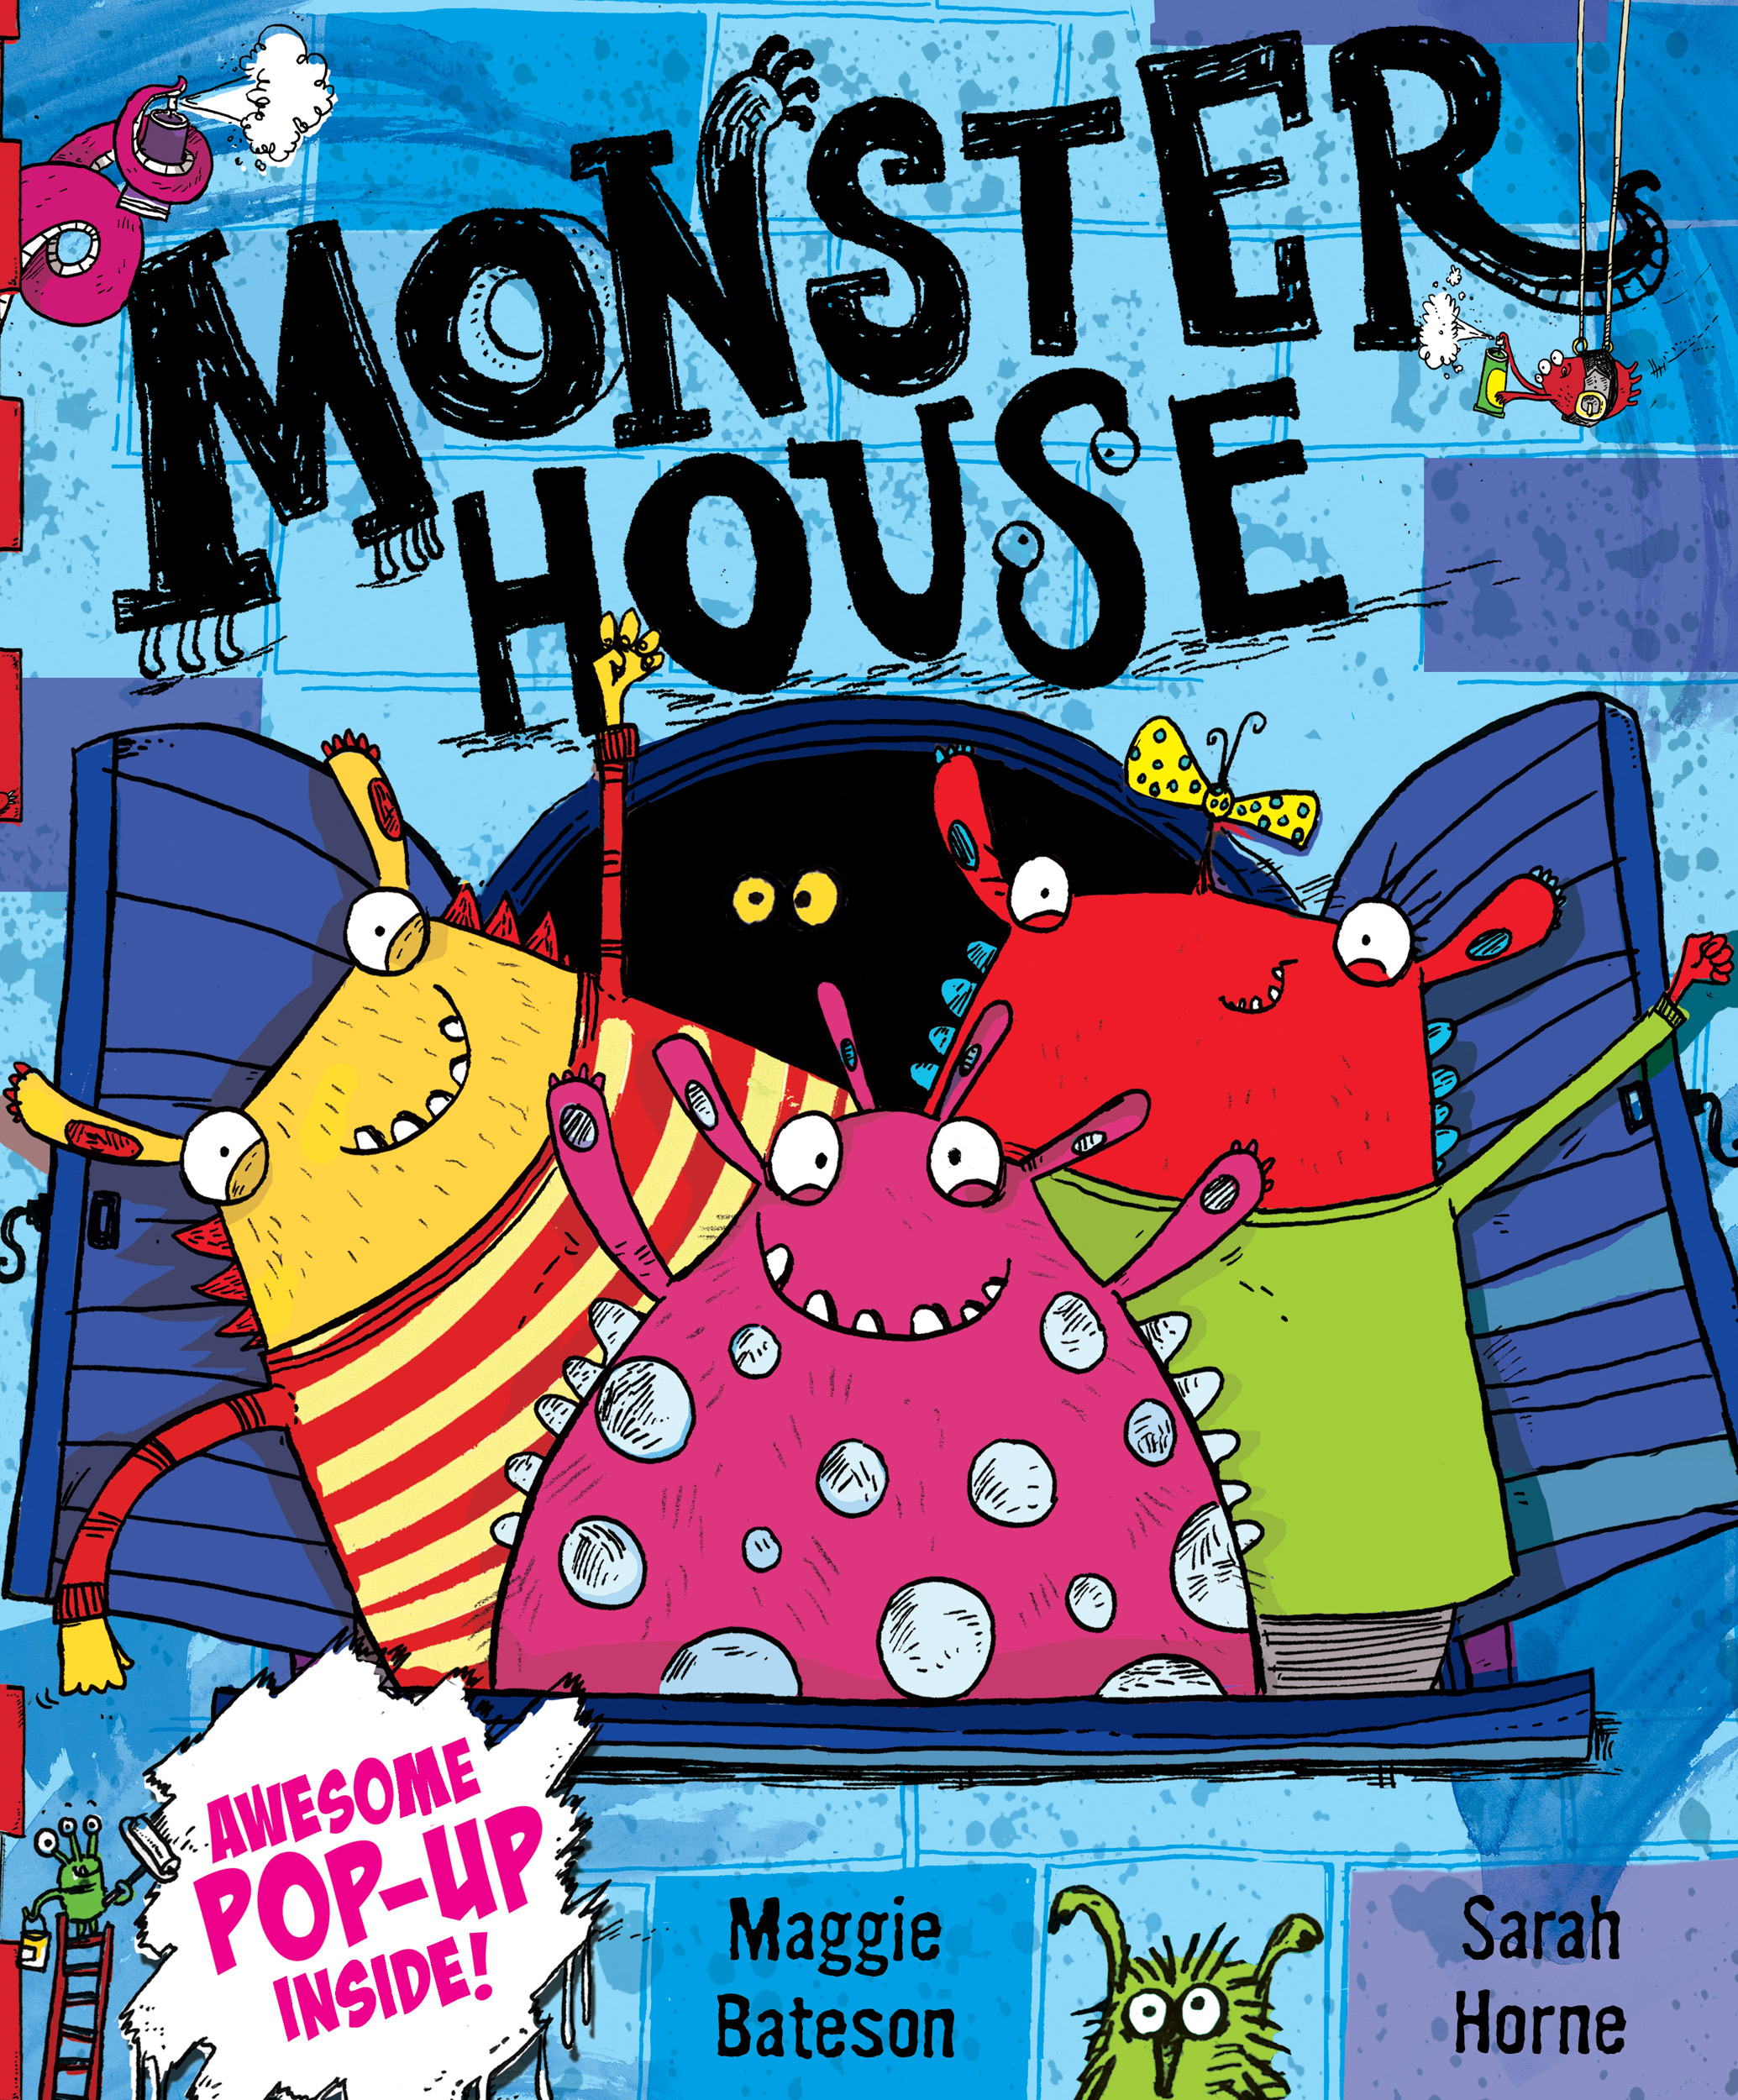 Pop Up Book Cover Monster House Pop Up Book By Sarah Horne Maggie Bateson